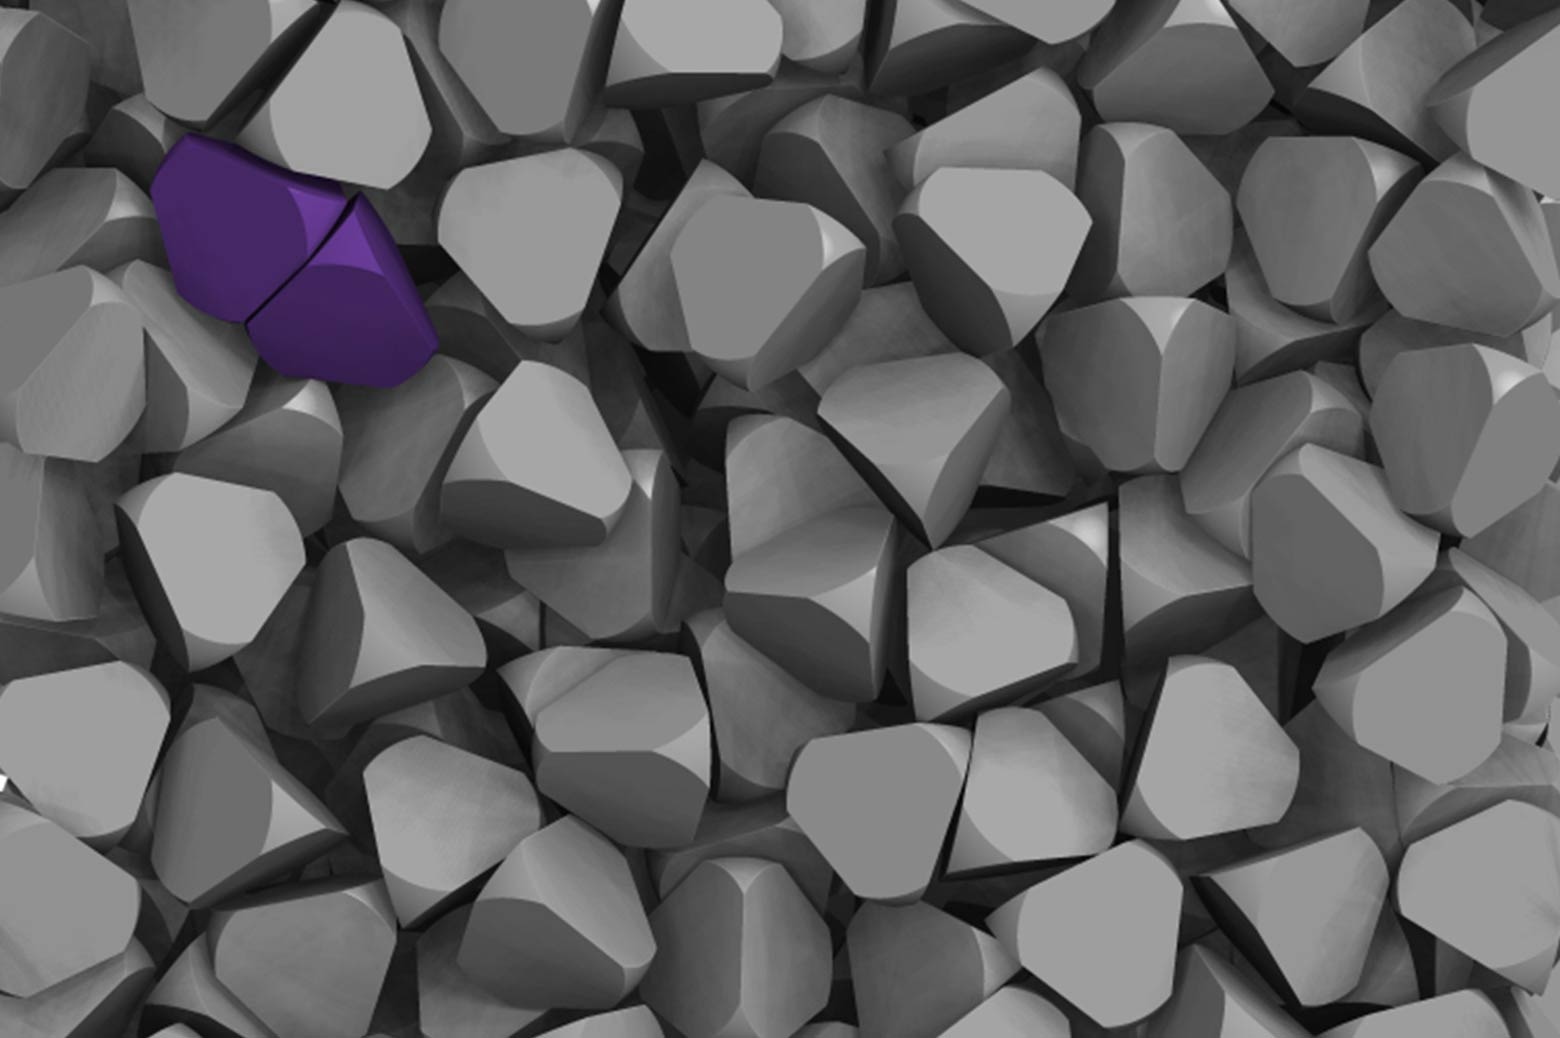 Computer model of purple tetrahedra beginning crystallization.